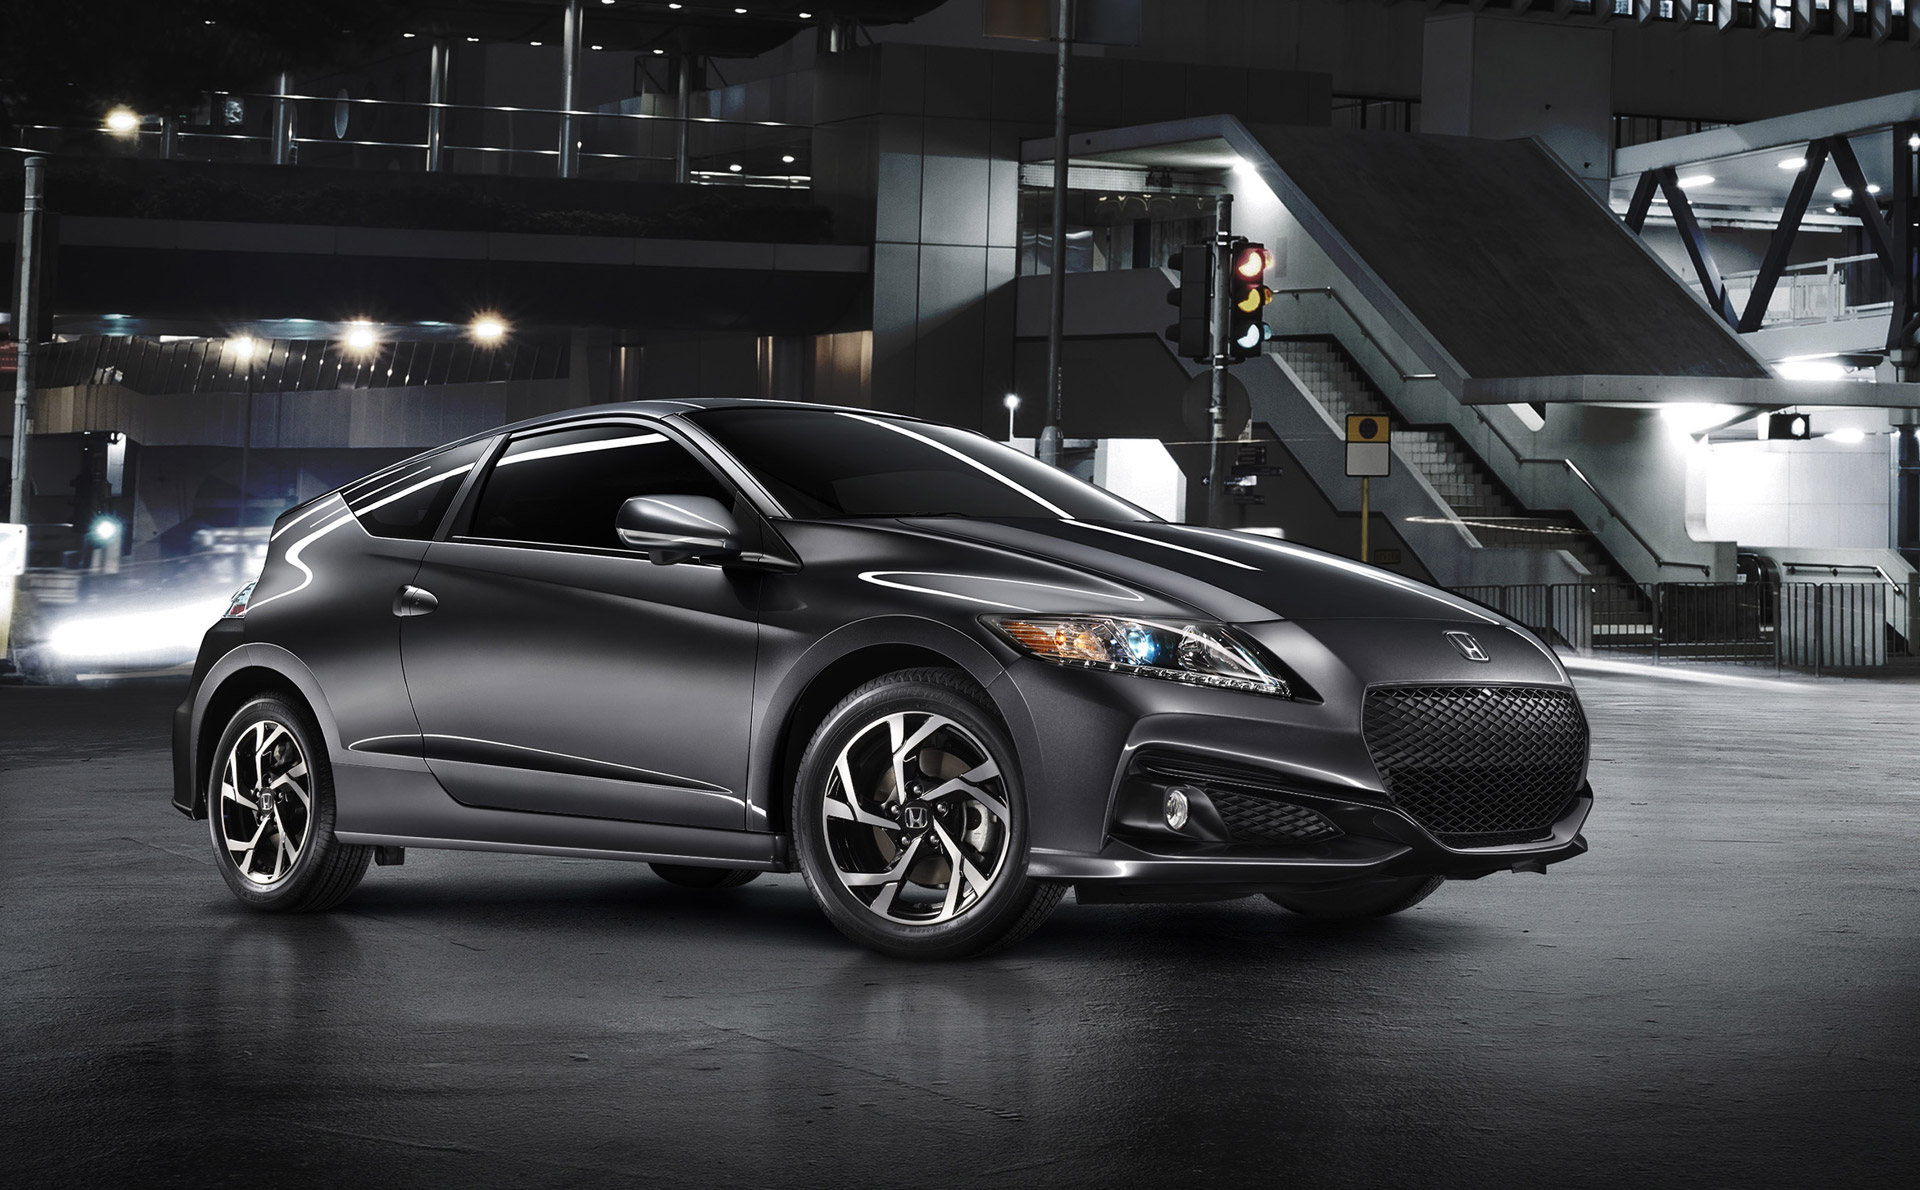 2016 honda cr z gets updated look no extra power. Black Bedroom Furniture Sets. Home Design Ideas